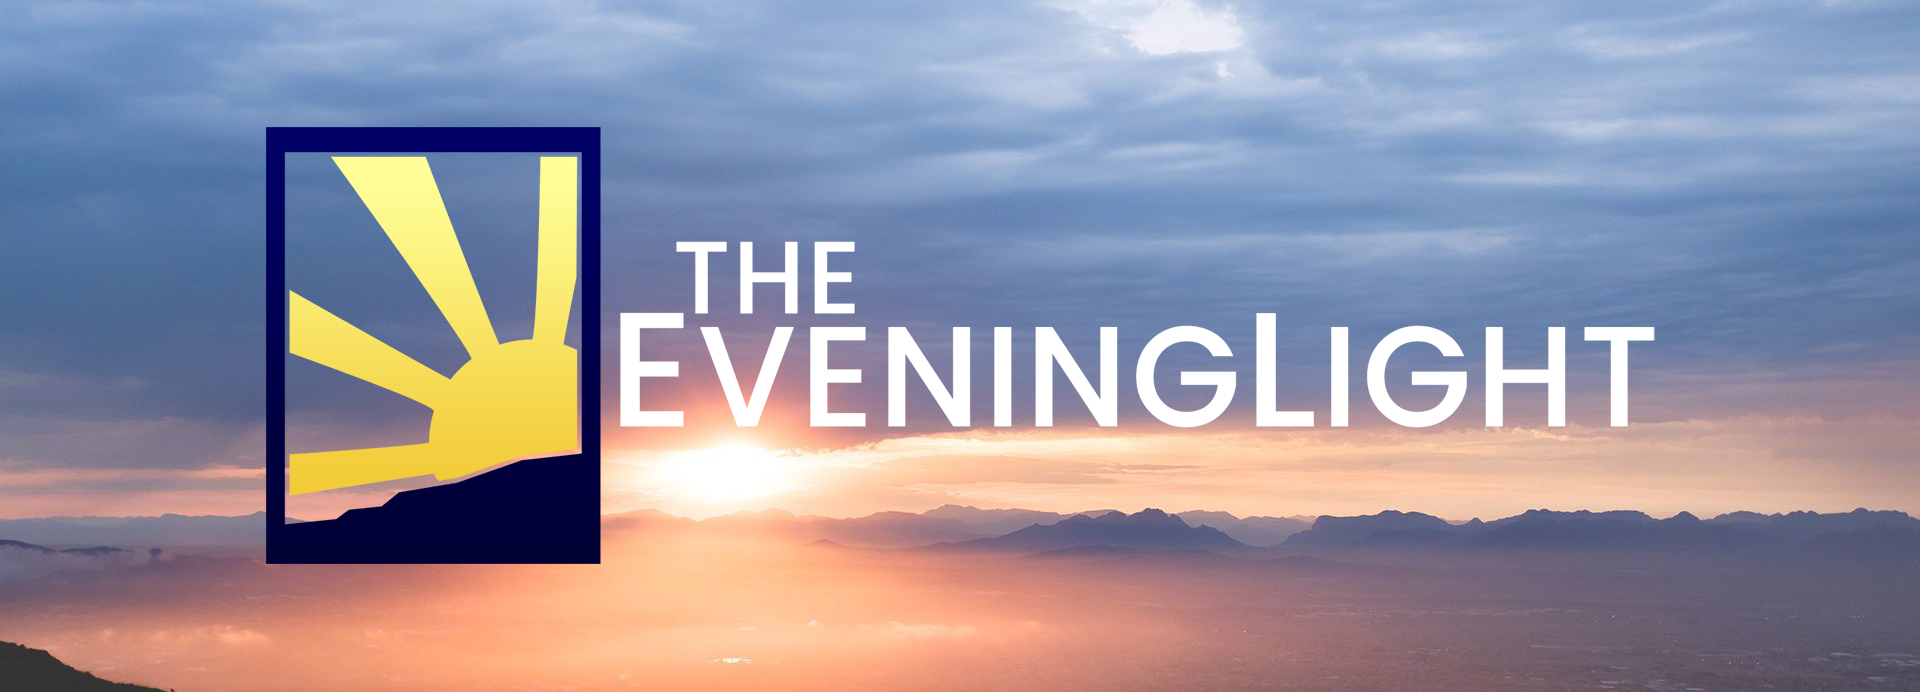 Subscribe to The Evening Light